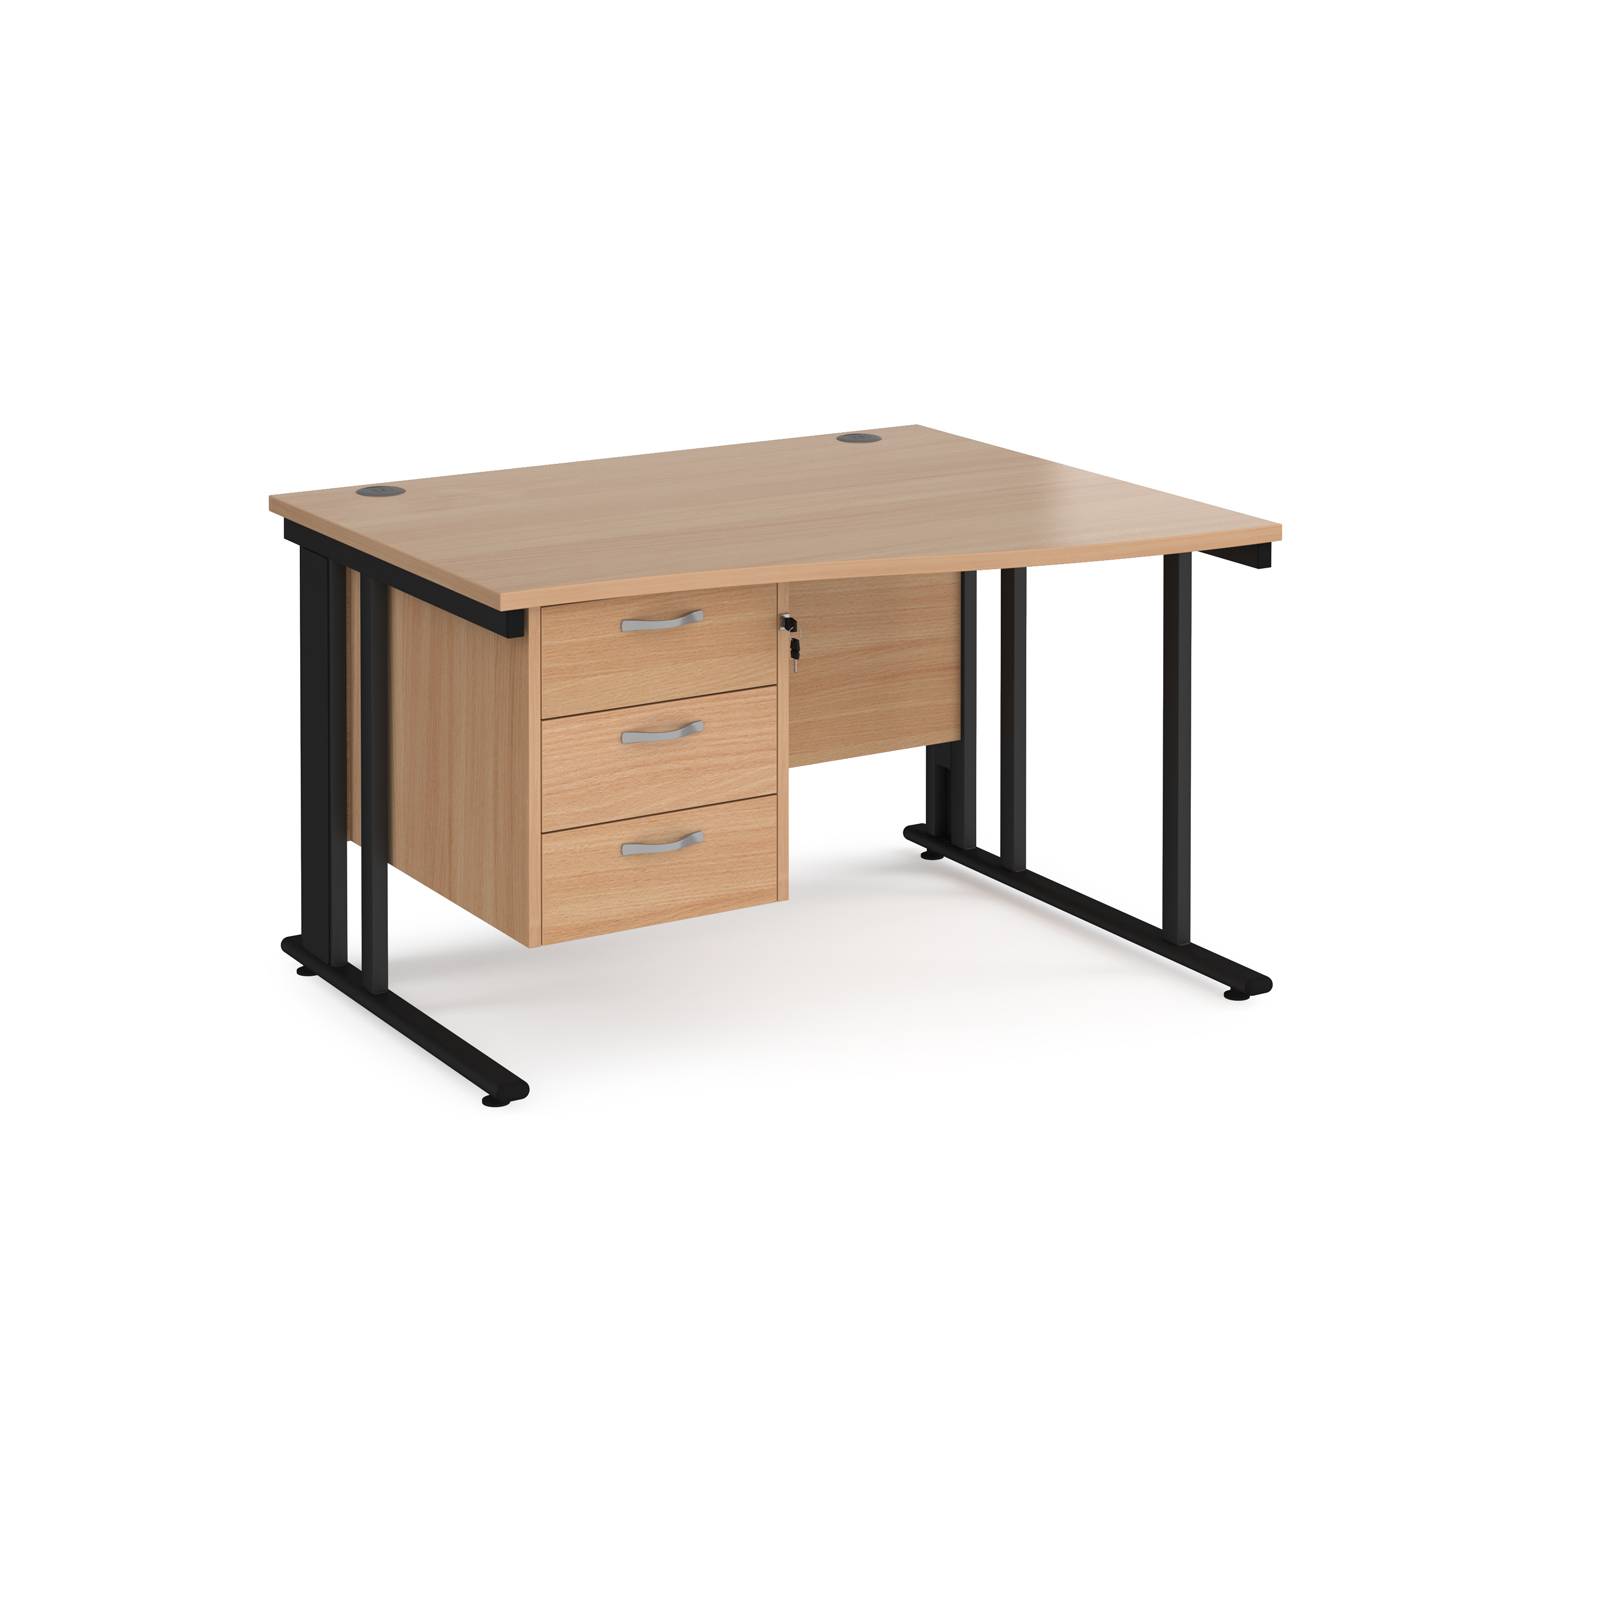 Maestro 25 right hand wave desk 1200mm wide with 3 drawer pedestal - black cable managed leg frame, beech top